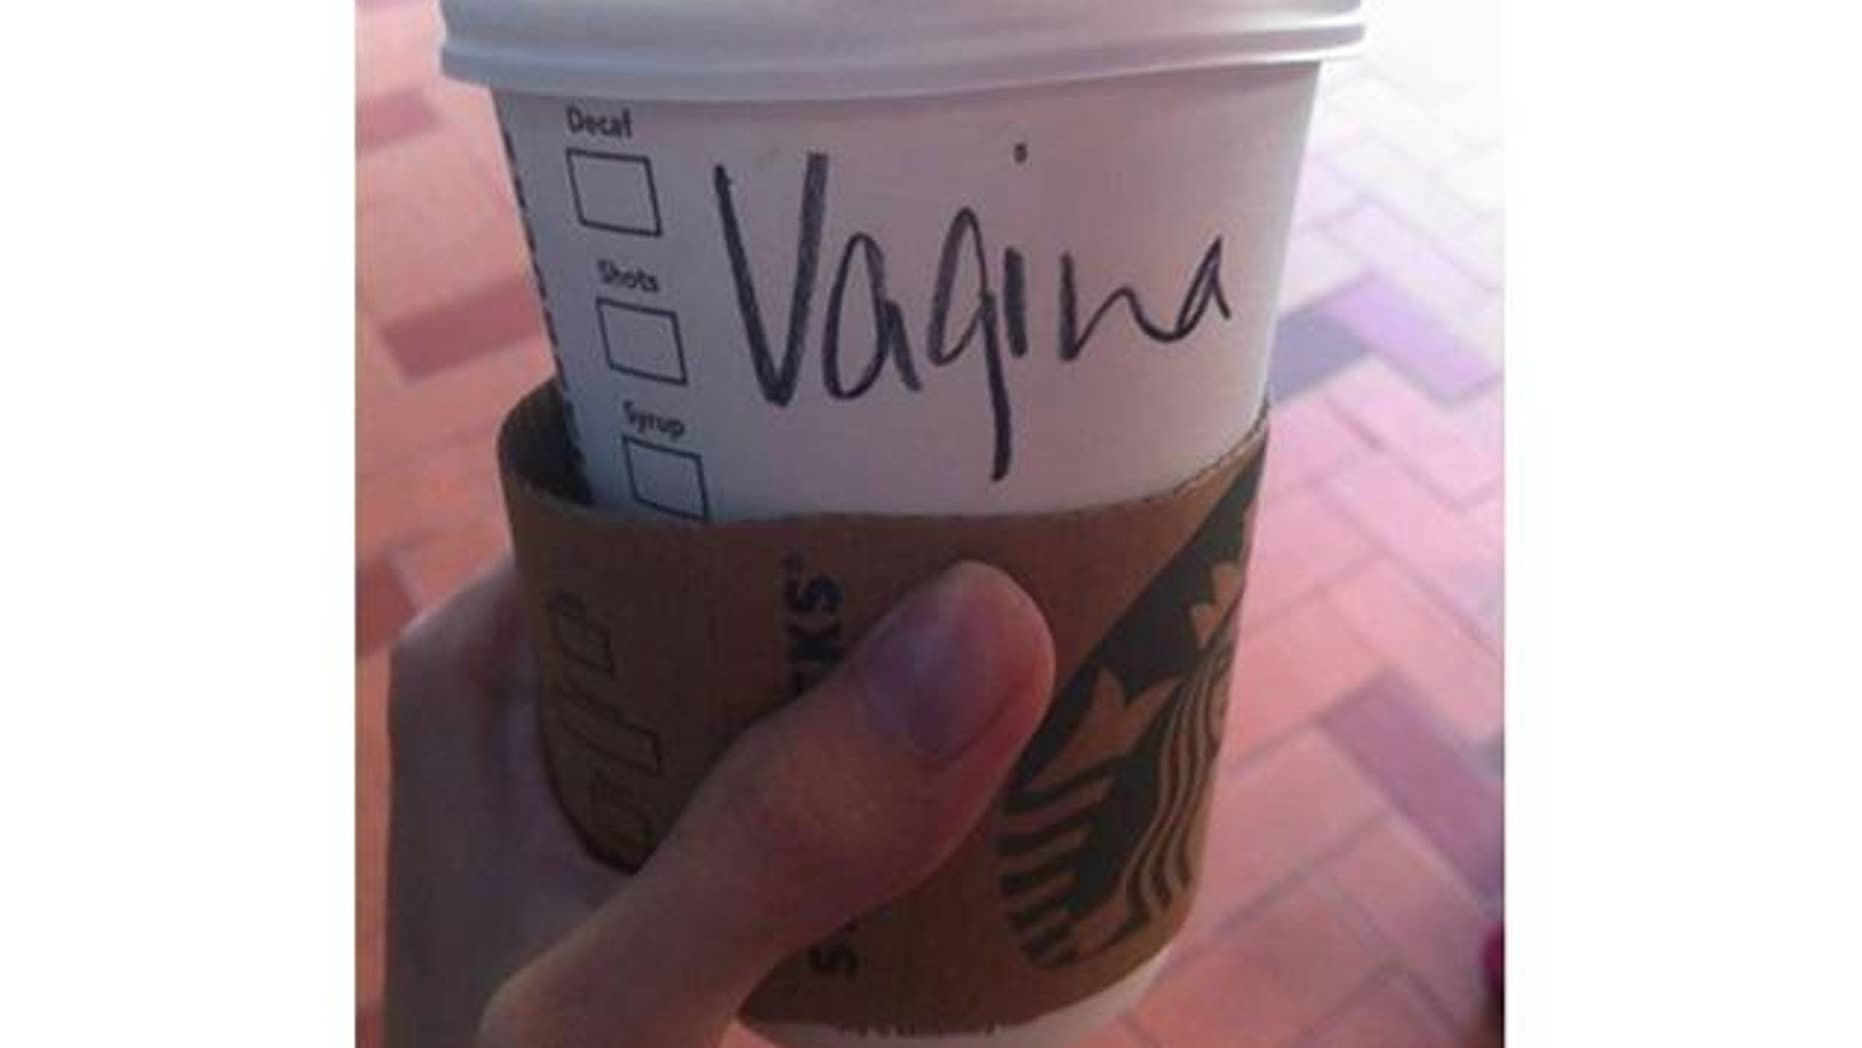 Virginia Goh's cup at a Hong Kong branch of Starbucks.